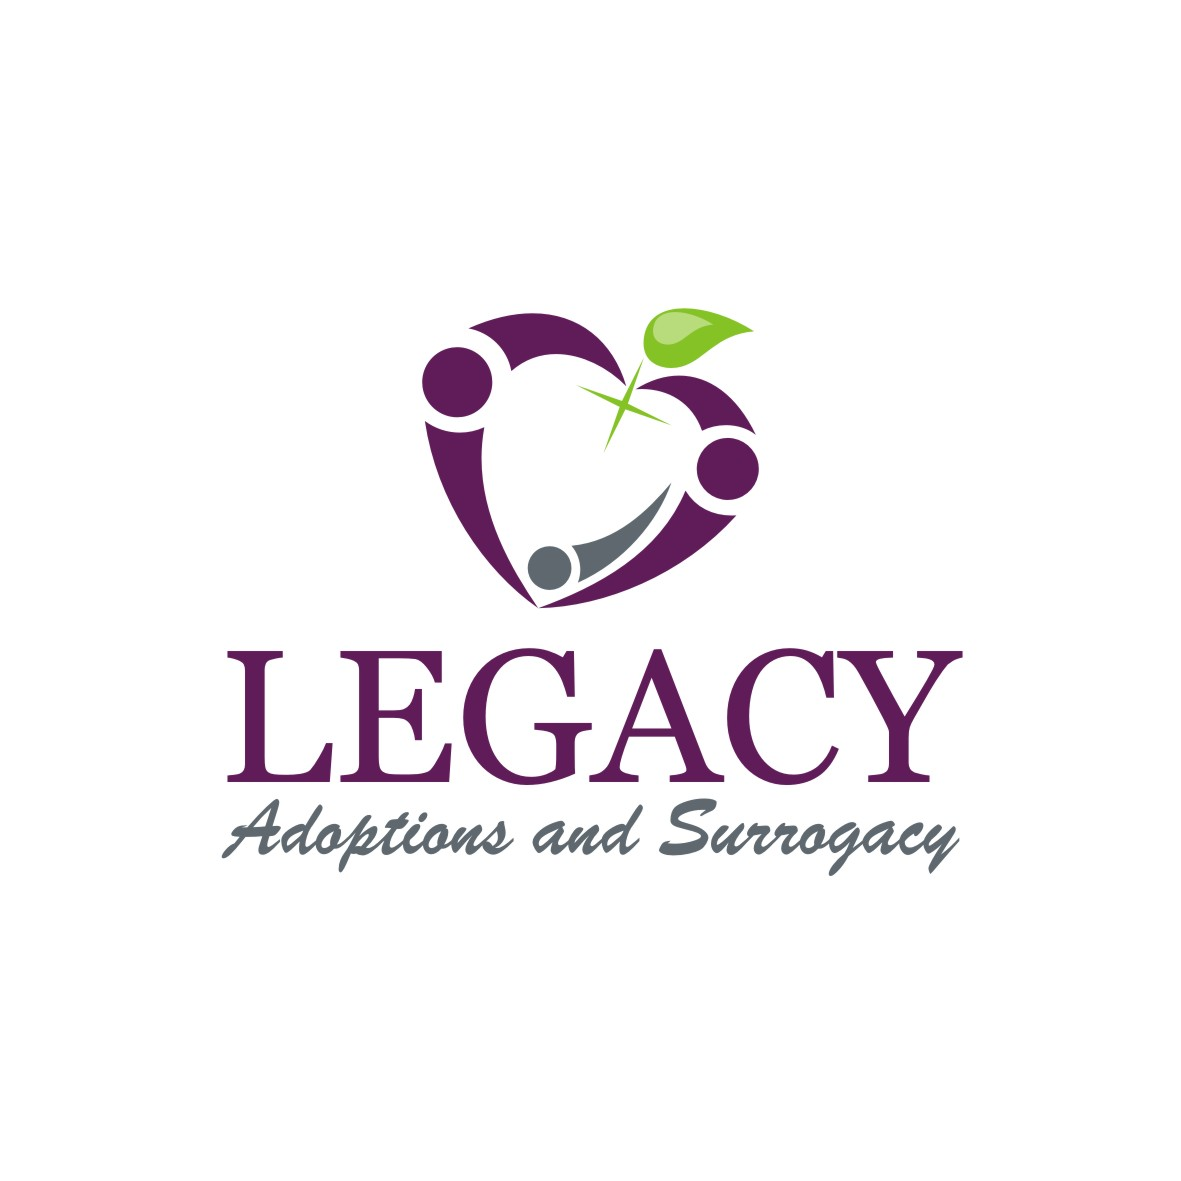 Logo Design by arteo_design - Entry No. 113 in the Logo Design Contest Legacy Adoptions and Surrogacy Logo Design.